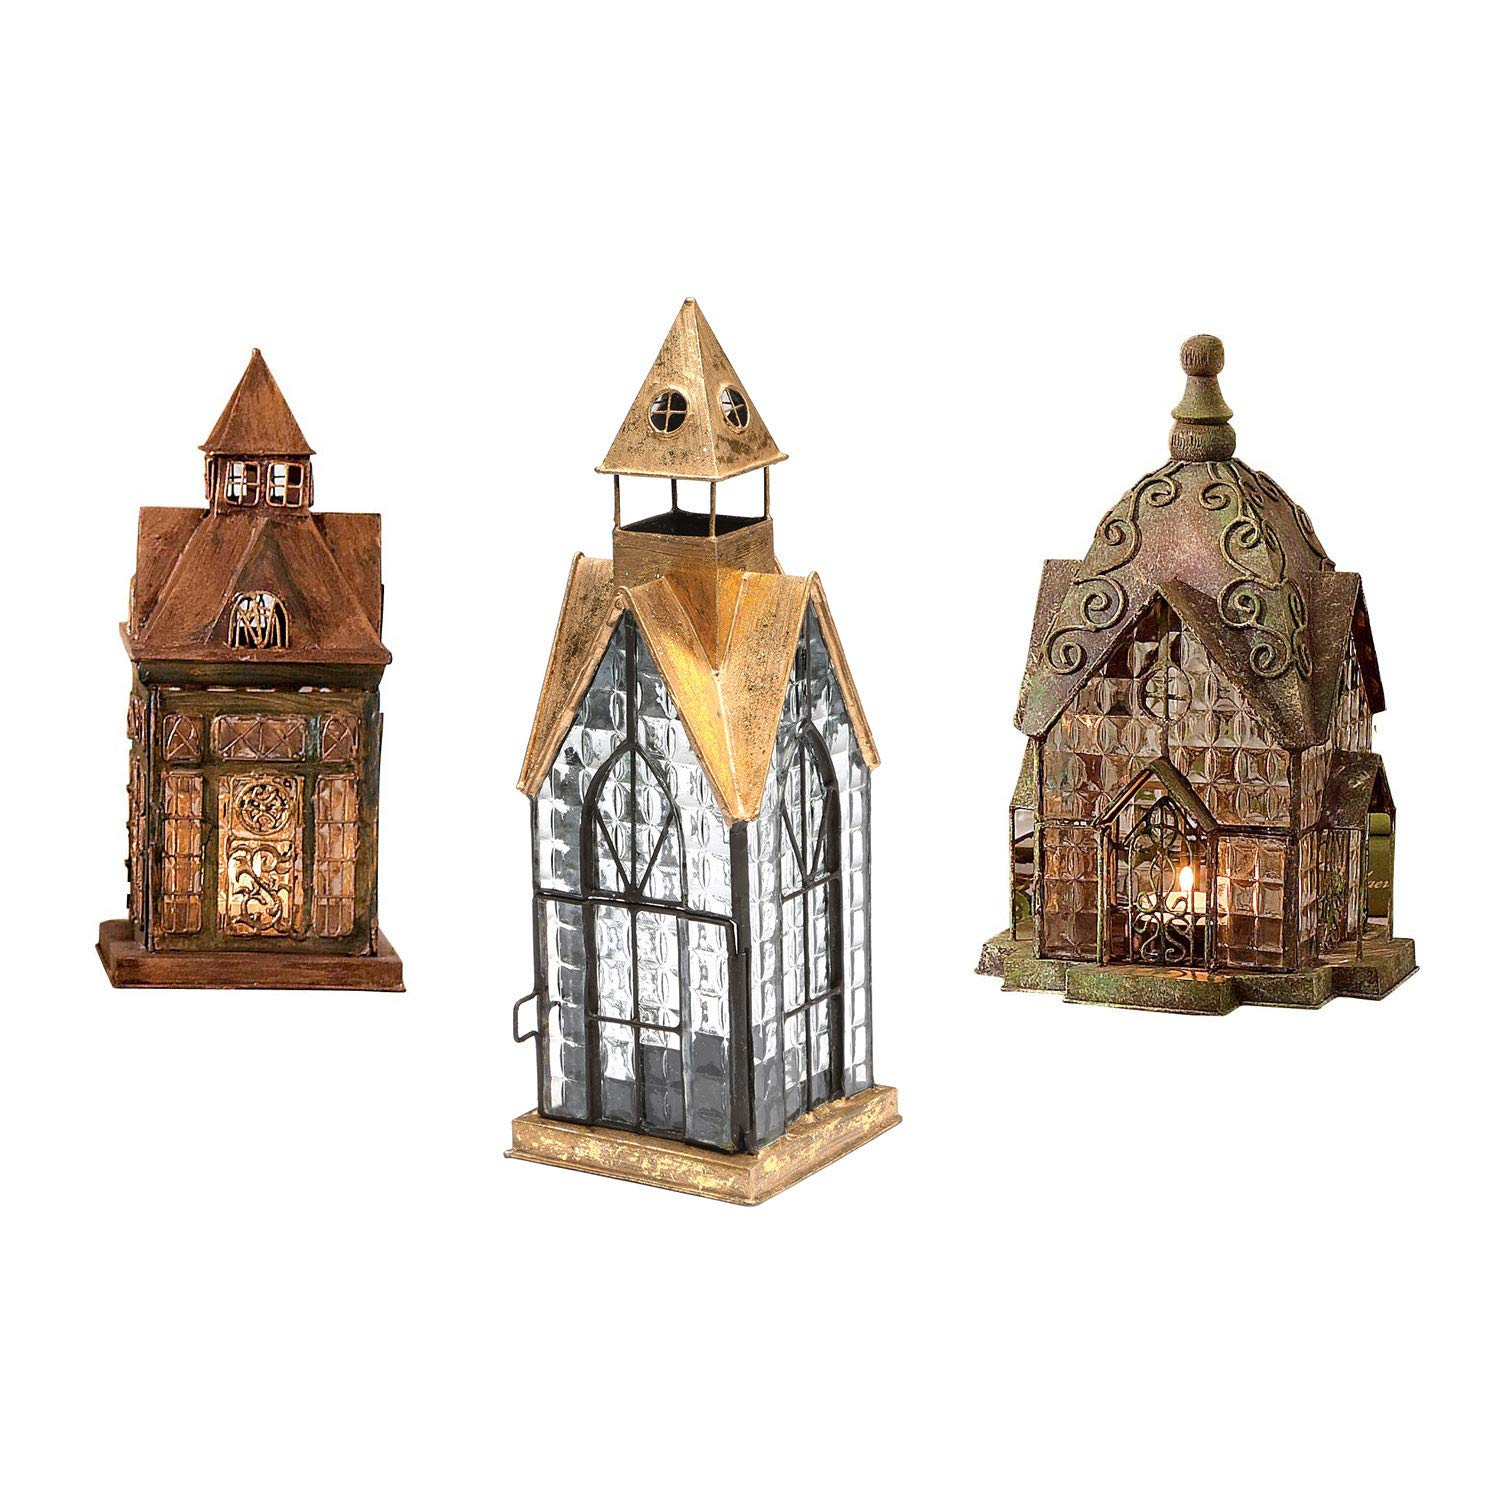 Set Of 3 Glass And Metal Candle Lanterns - Classic European Architectural Houses